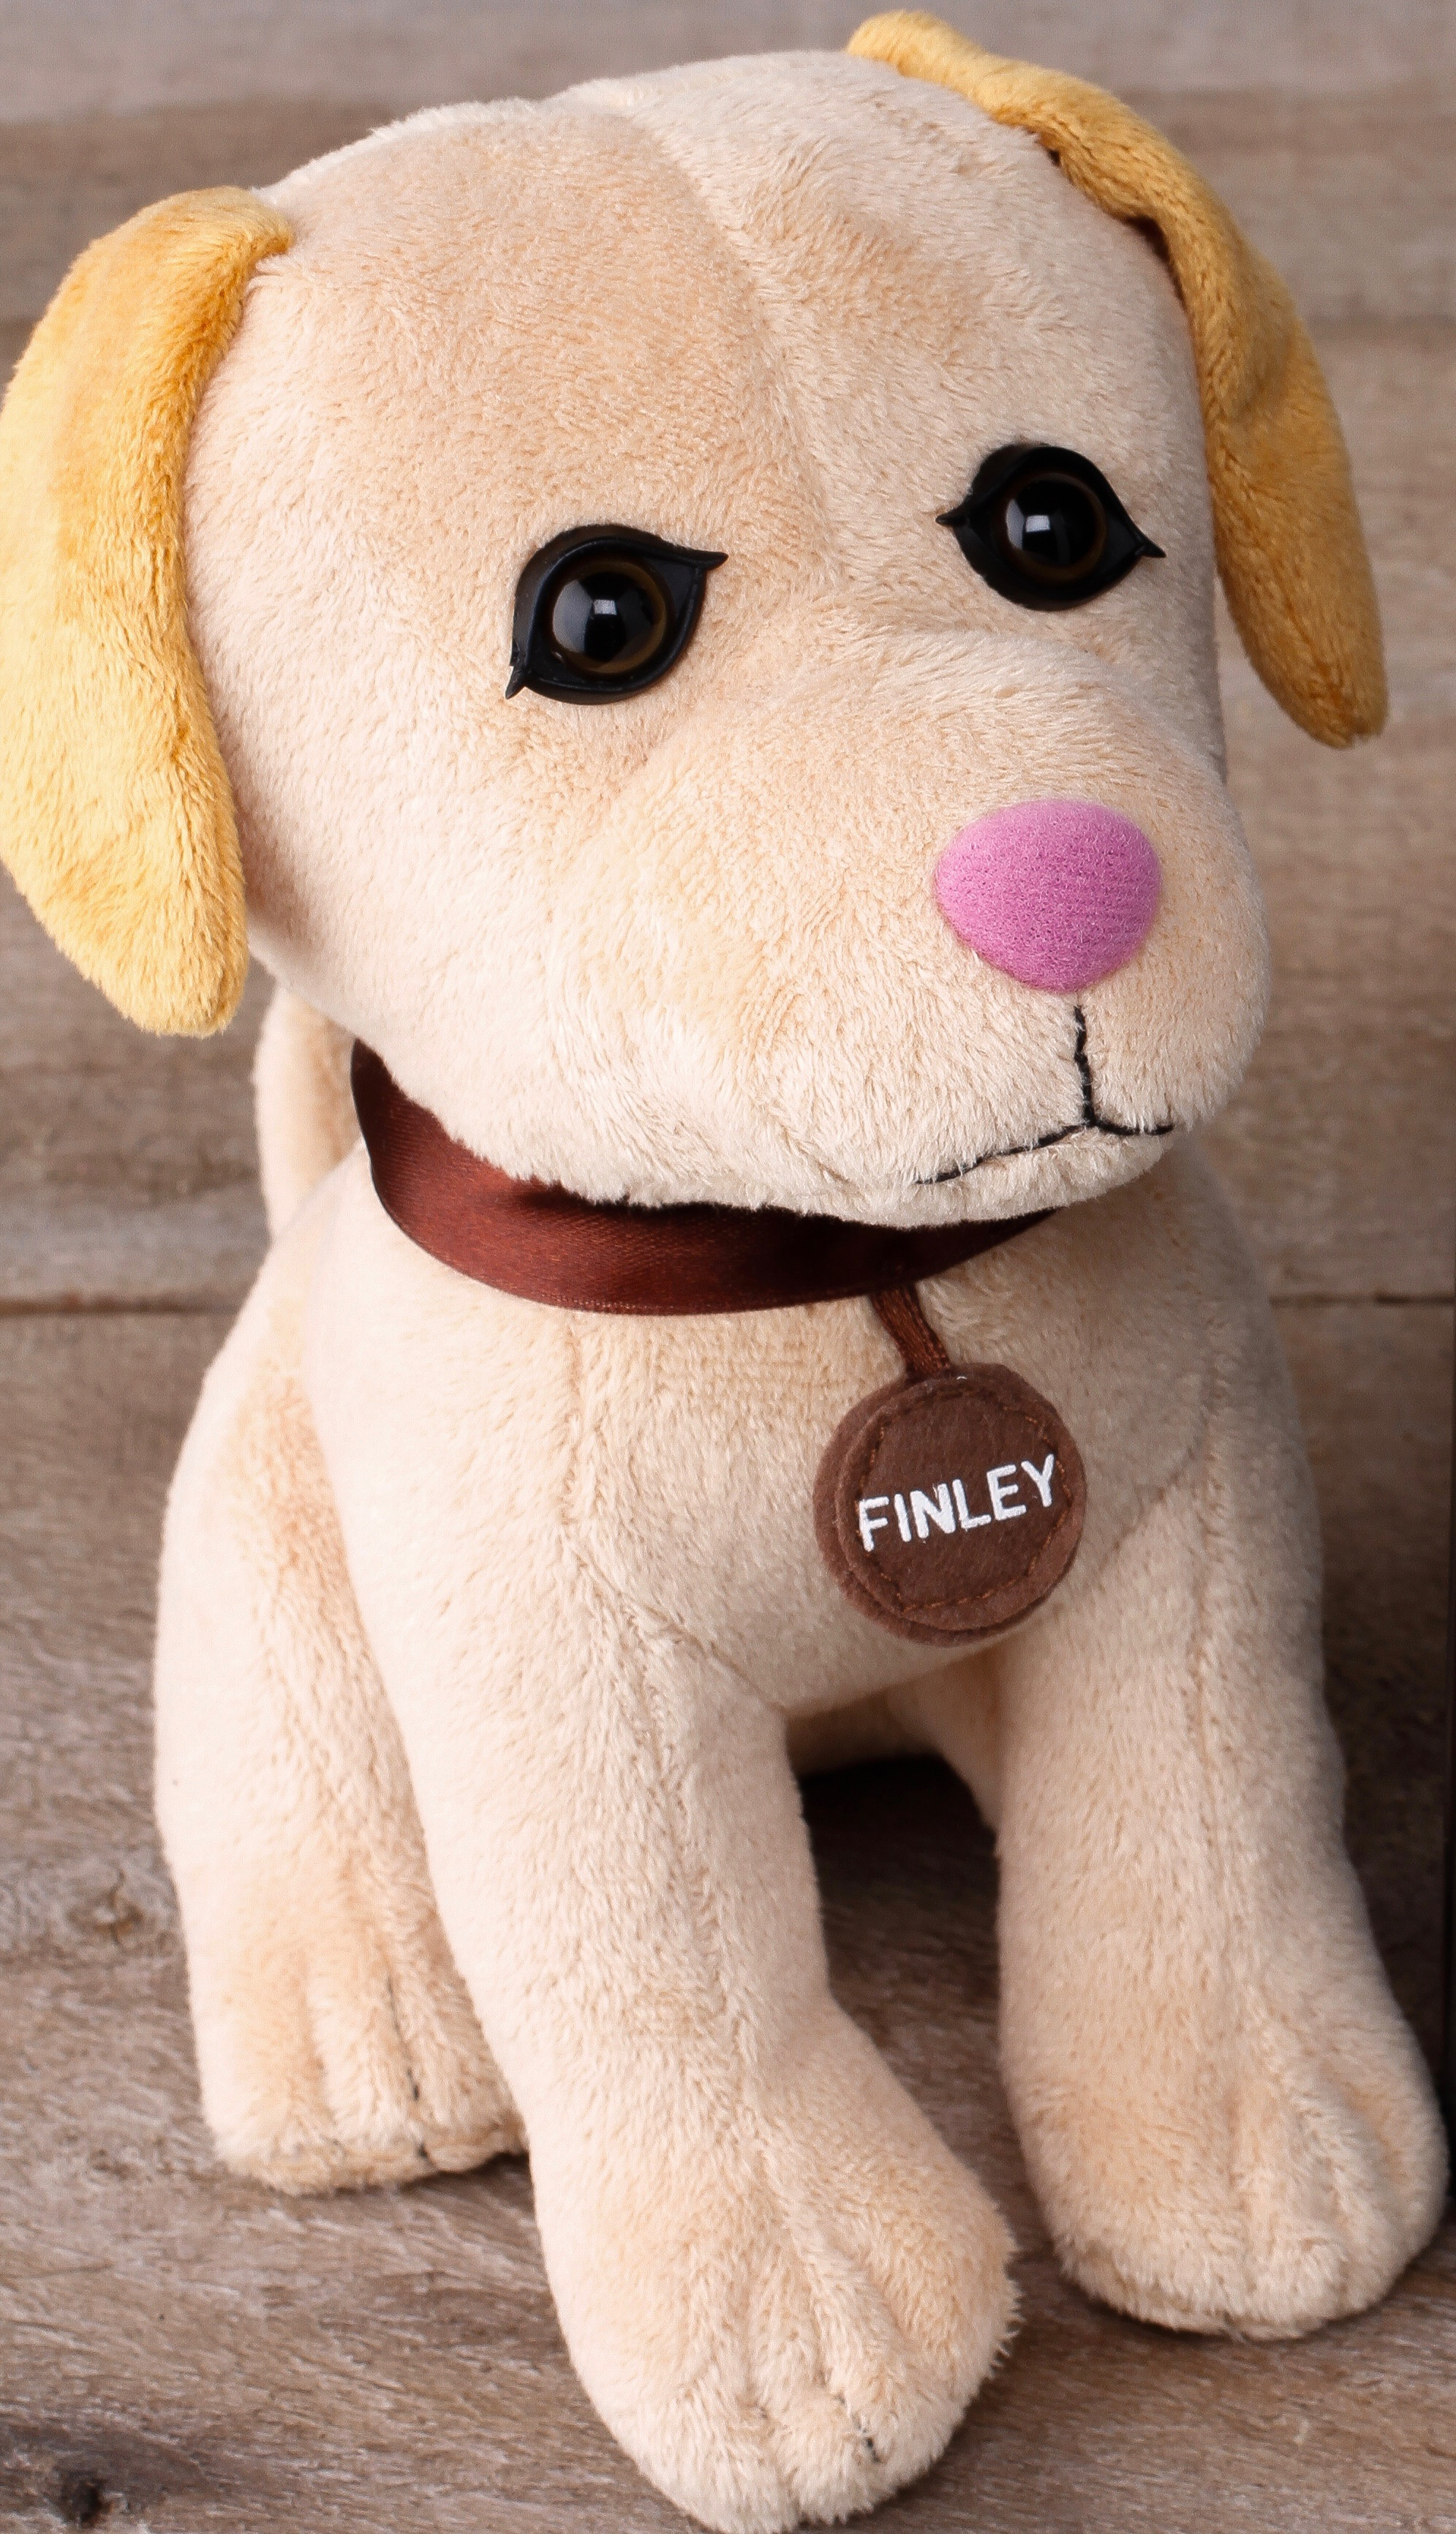 This Is Fine Dog Stuffed Animal, Finley Dog Stuffed Animal Tin Sheets To The Wind